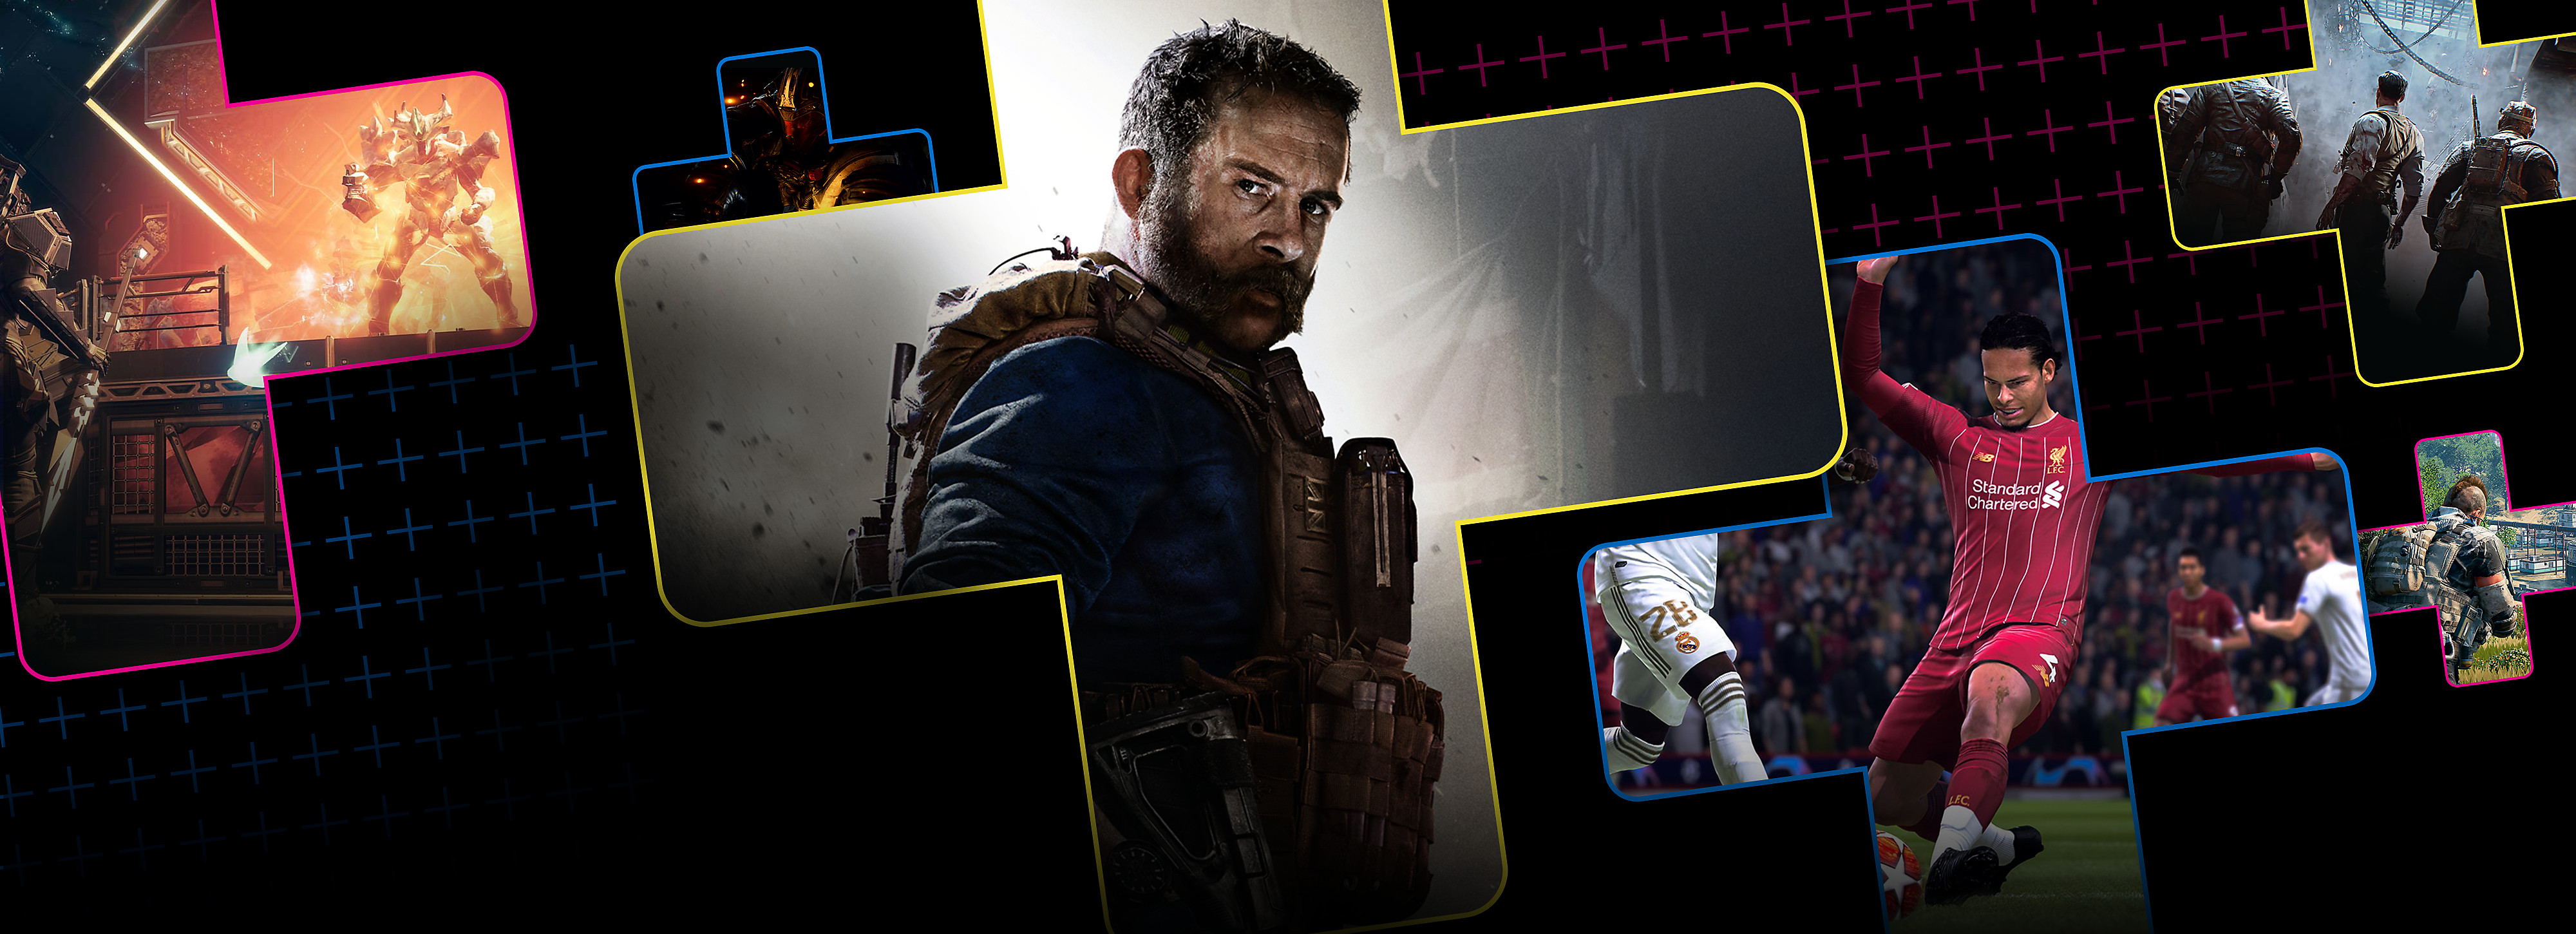 Play multiplayer in Call of Duty: Black Ops 4, FIFA 19, and more with PlayStation Plus